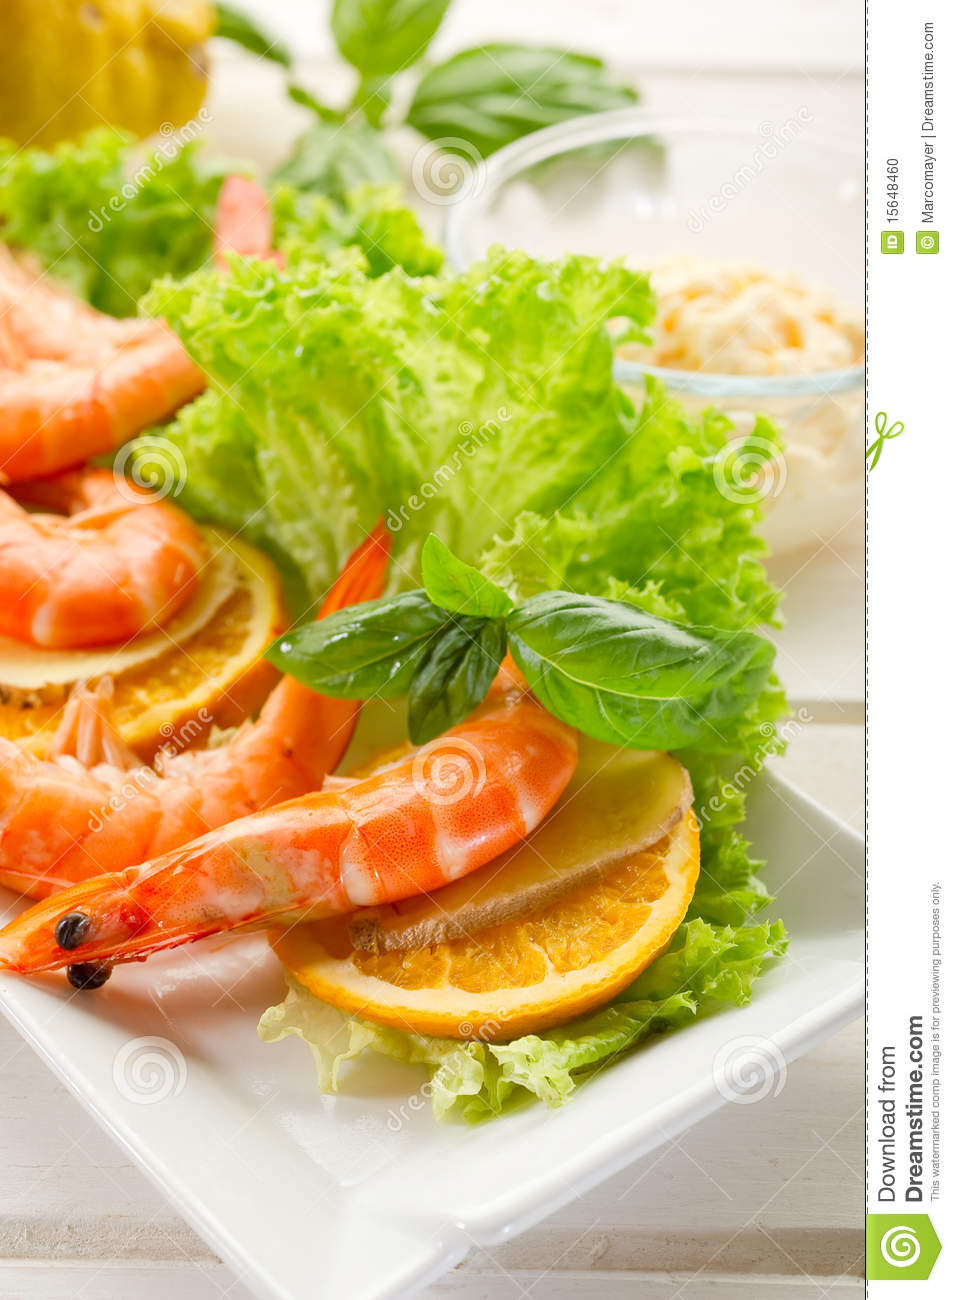 More similar stock images of ` Shrimp with green salad `